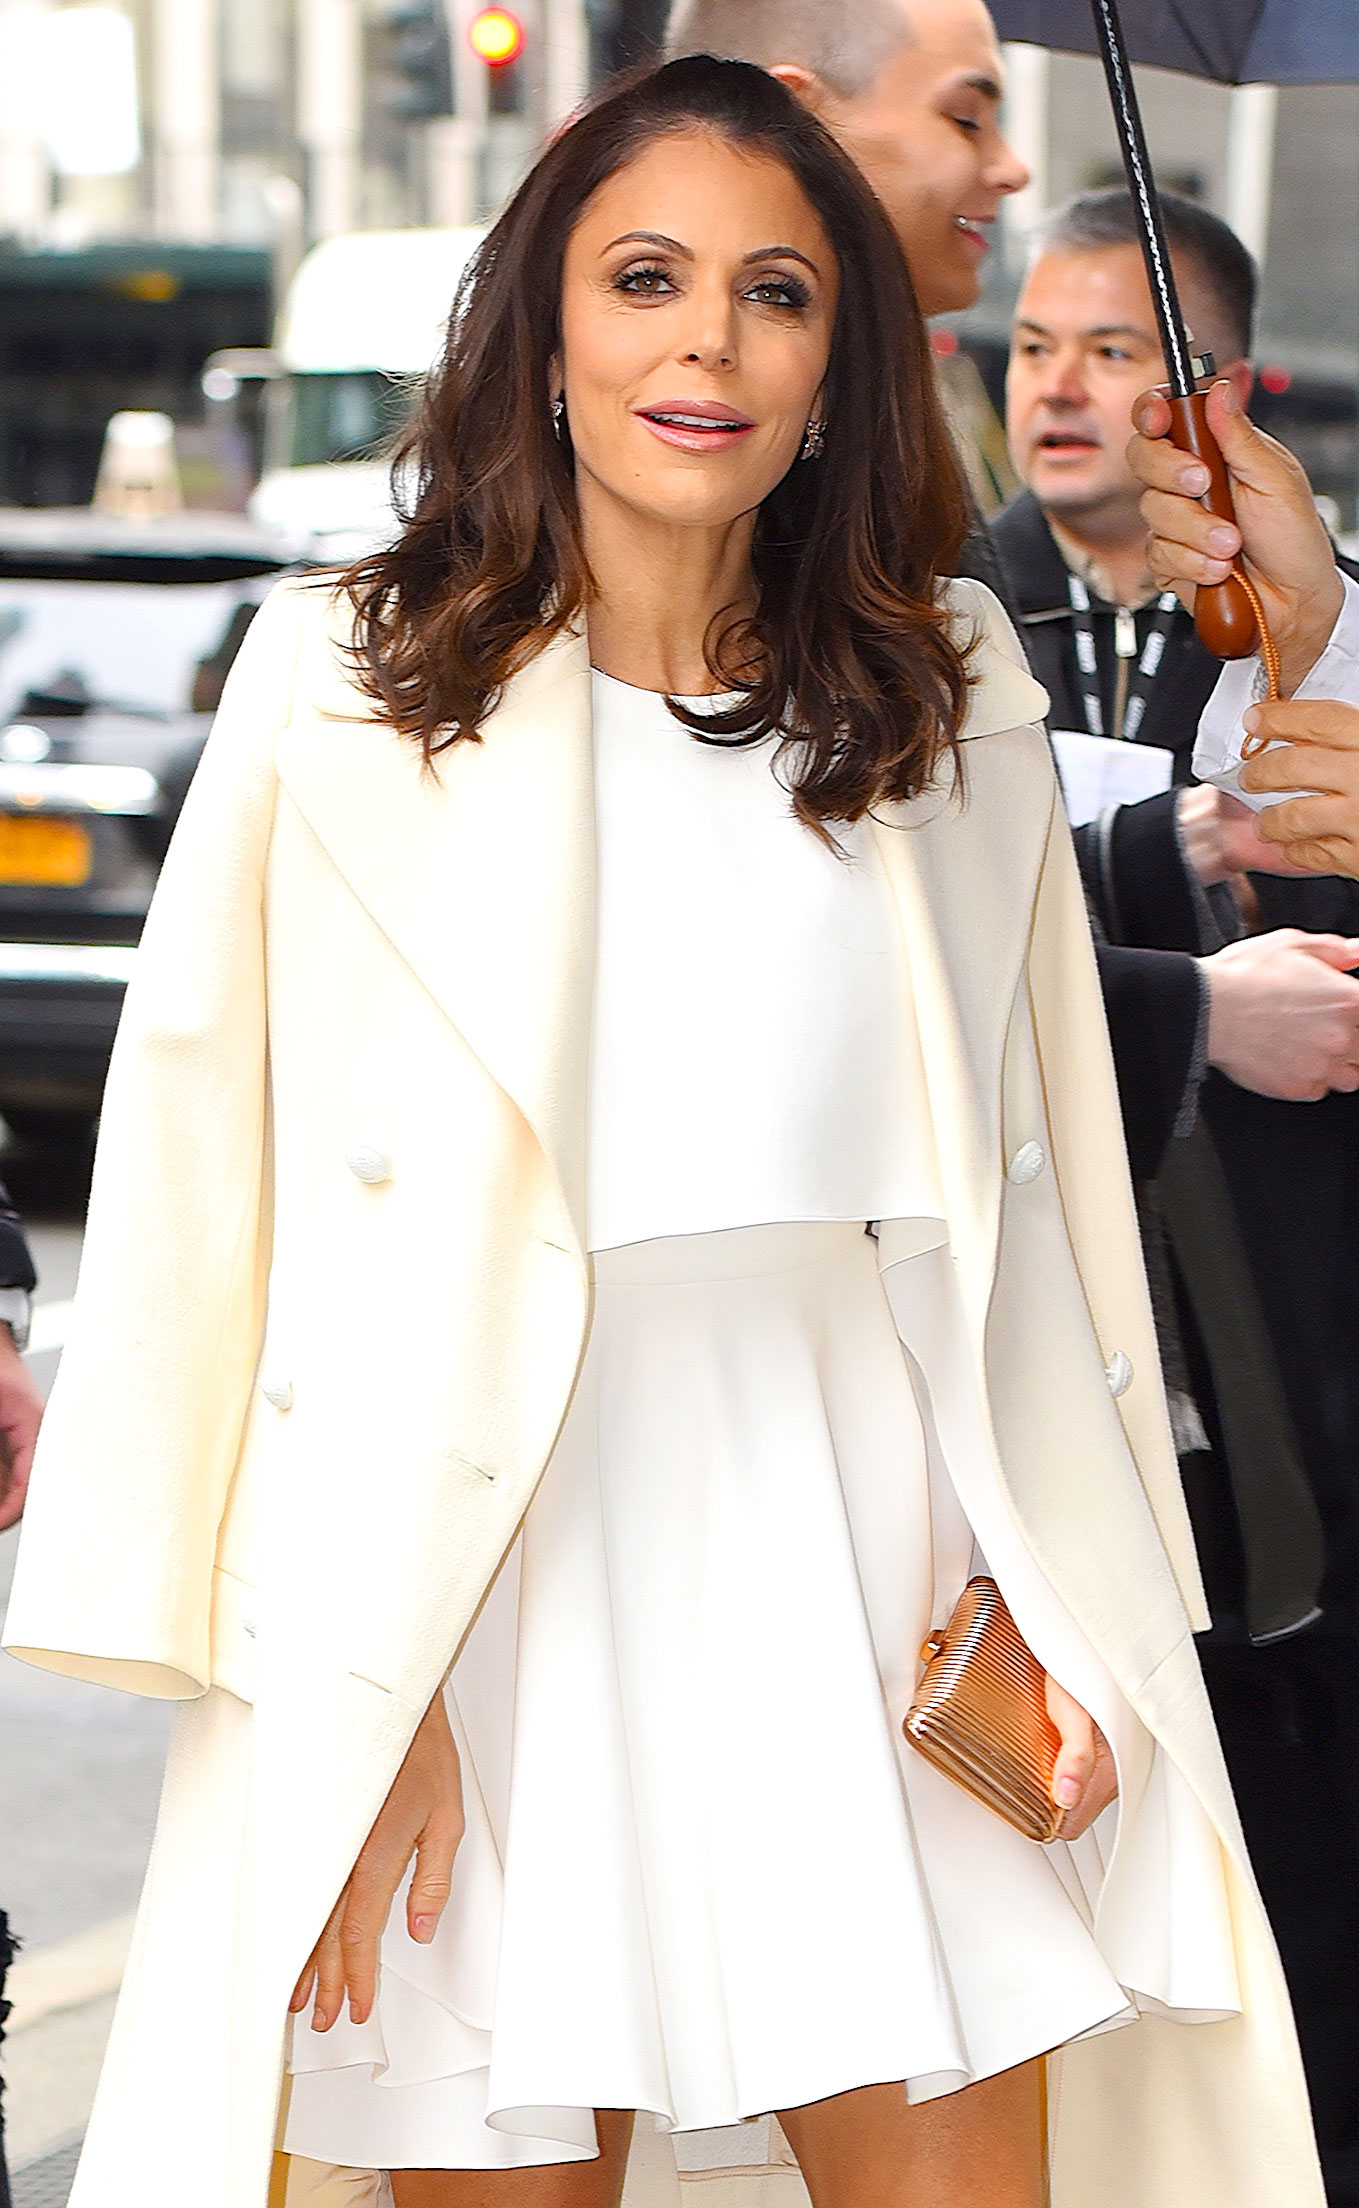 Bethenny Frankel Allergic Reaction - Bethenny Frankel at Cipriani 42nd Street for the Variety's Power of Women on April 5, 2019 in New York City.